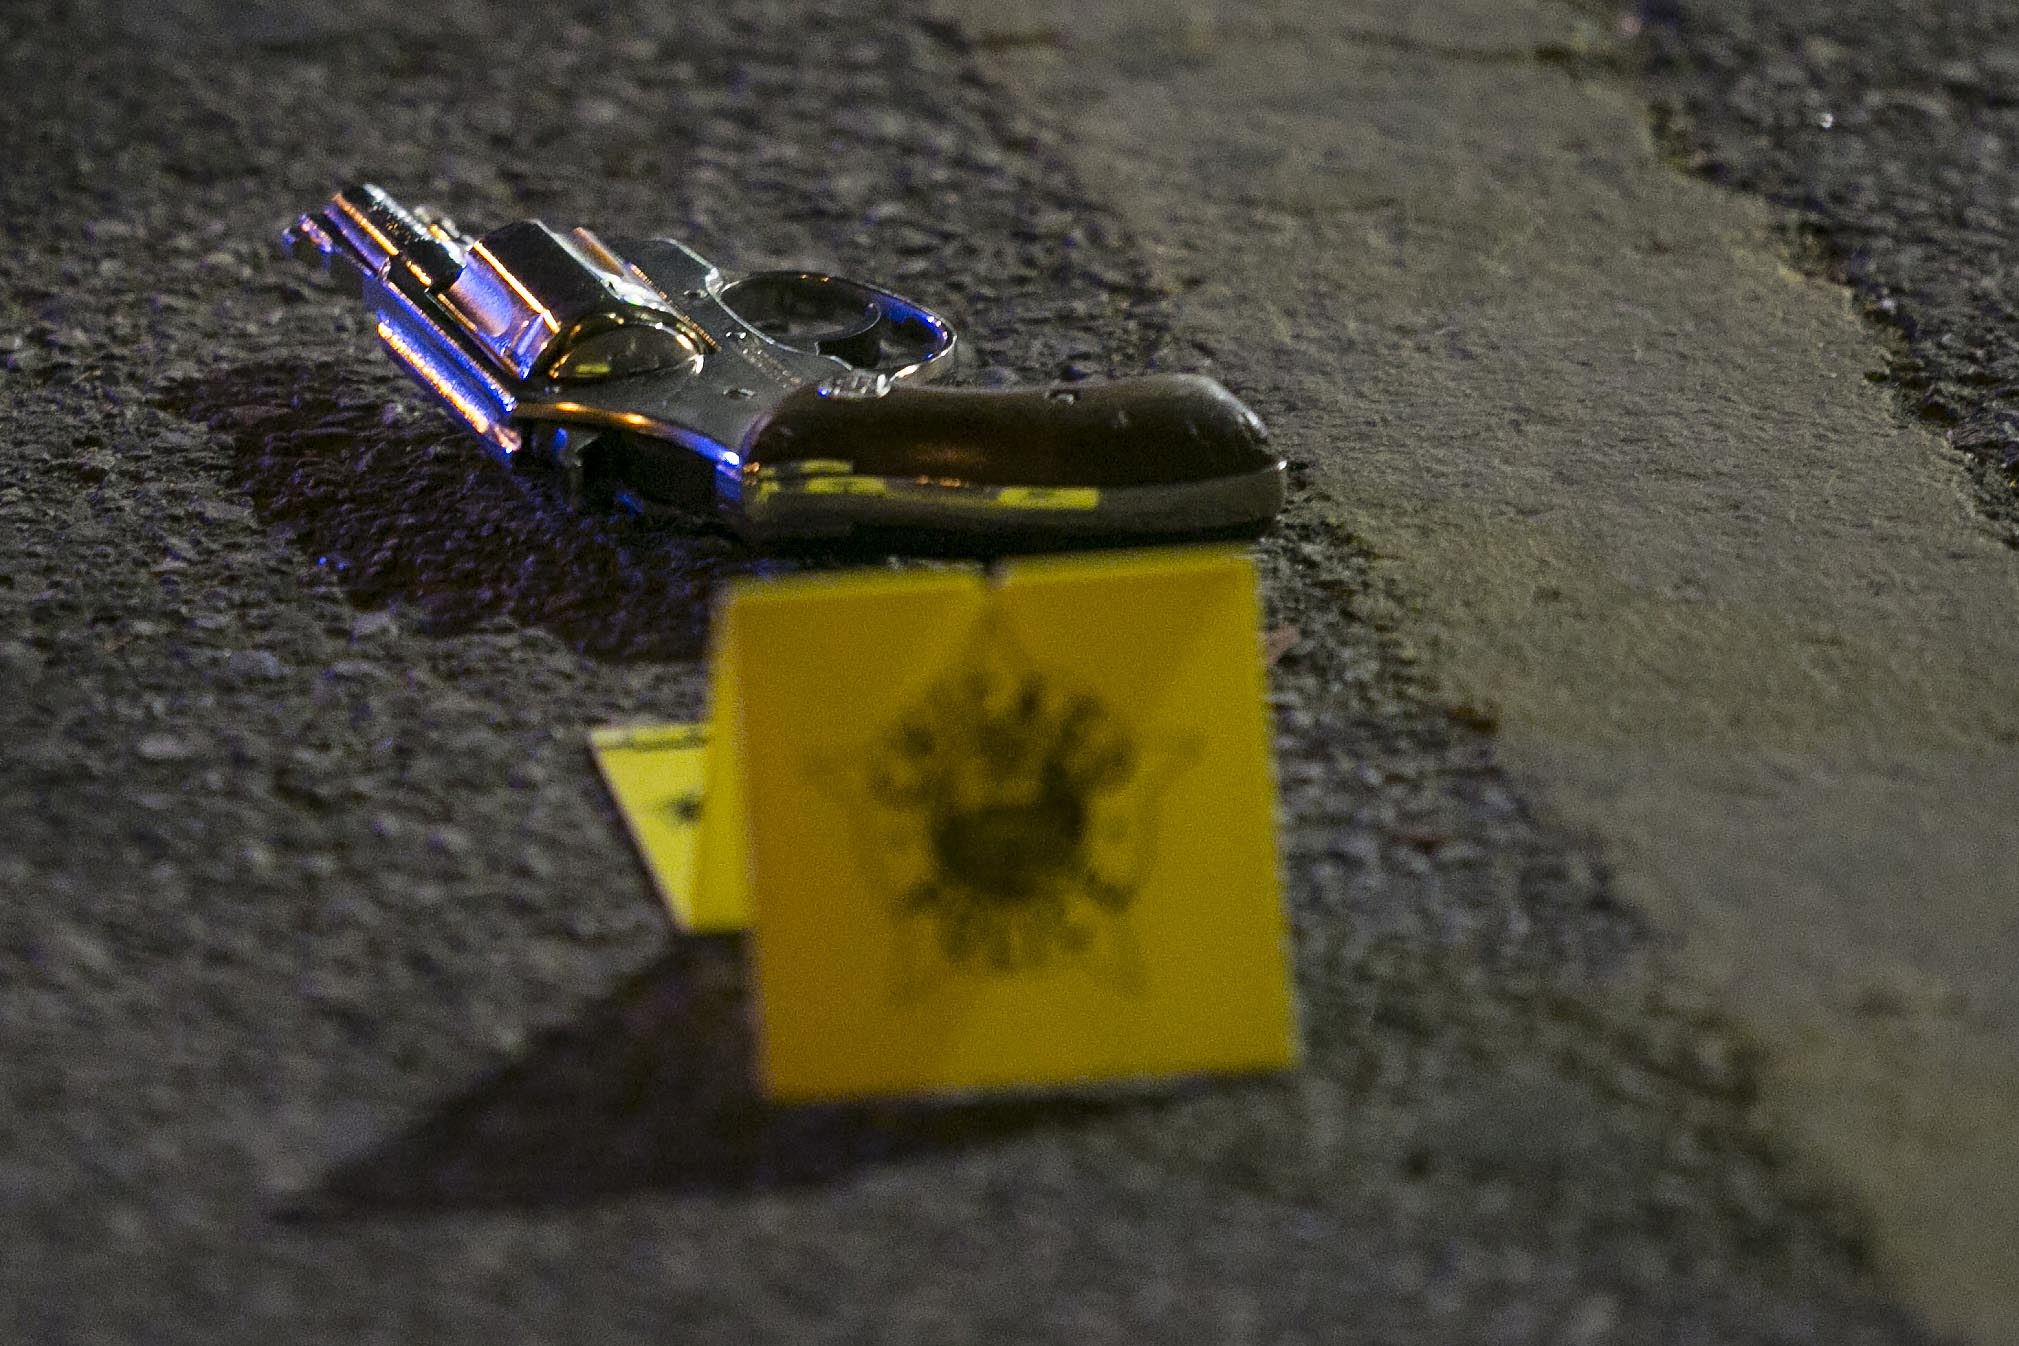 A 17-year-old boy was shot in an alley Jan. 22, 2020, in the 2600 block of West 64th Street.